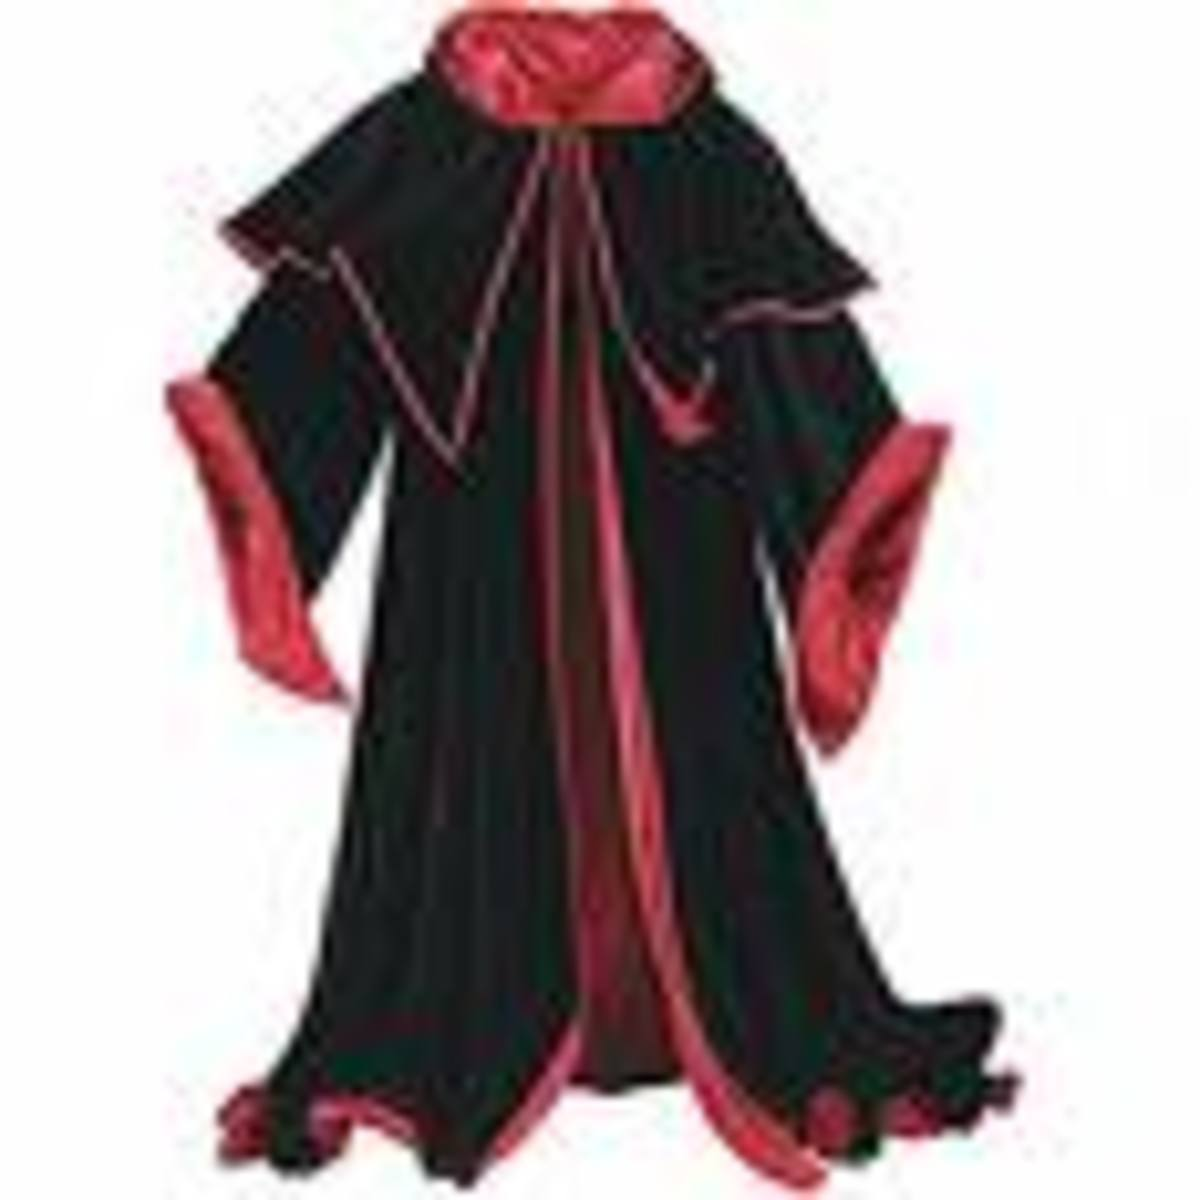 A sorcerer's cloak - courtesy of musicxspot.com